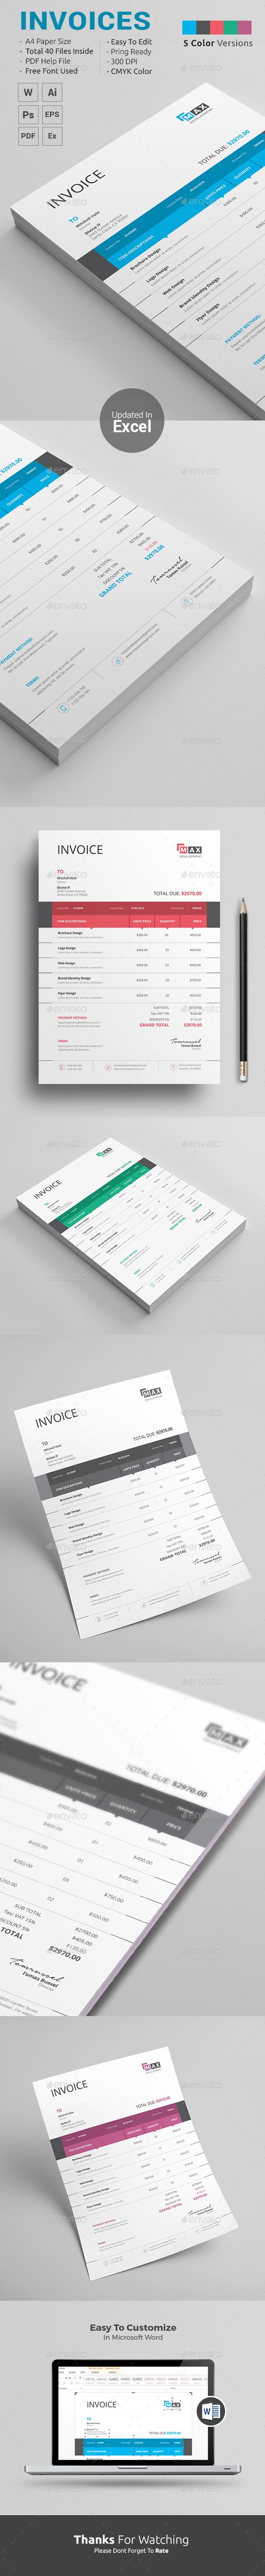 Invoice Excel   Pinterest   Template  Proposal templates and Font logo Invoice Excel by themedevisers Invoice Template  Use this Clean Invoice for  personal  corporate or